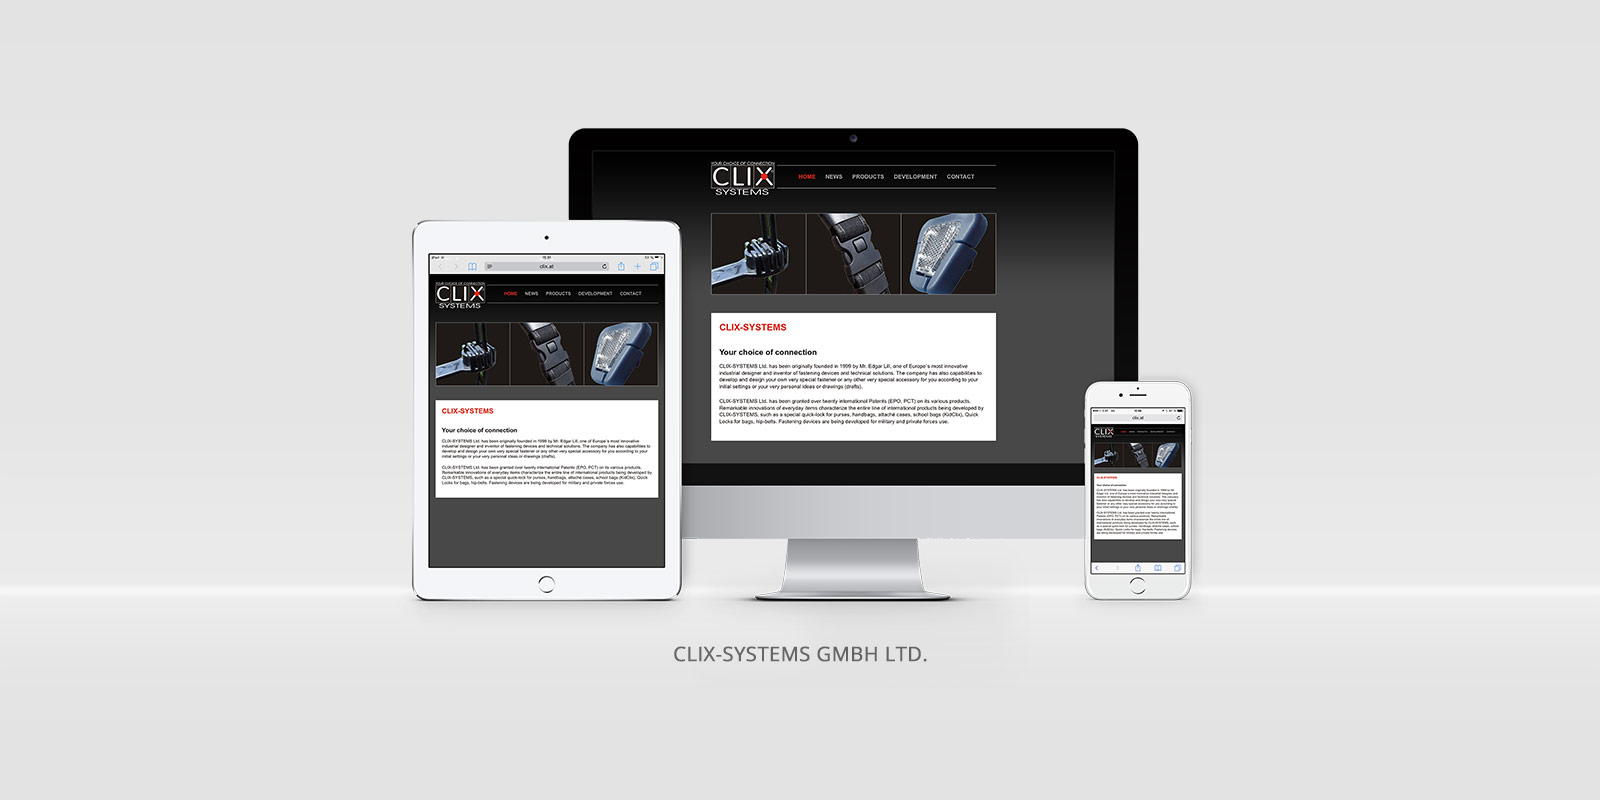 Clix-Systems GmbH Ltd.